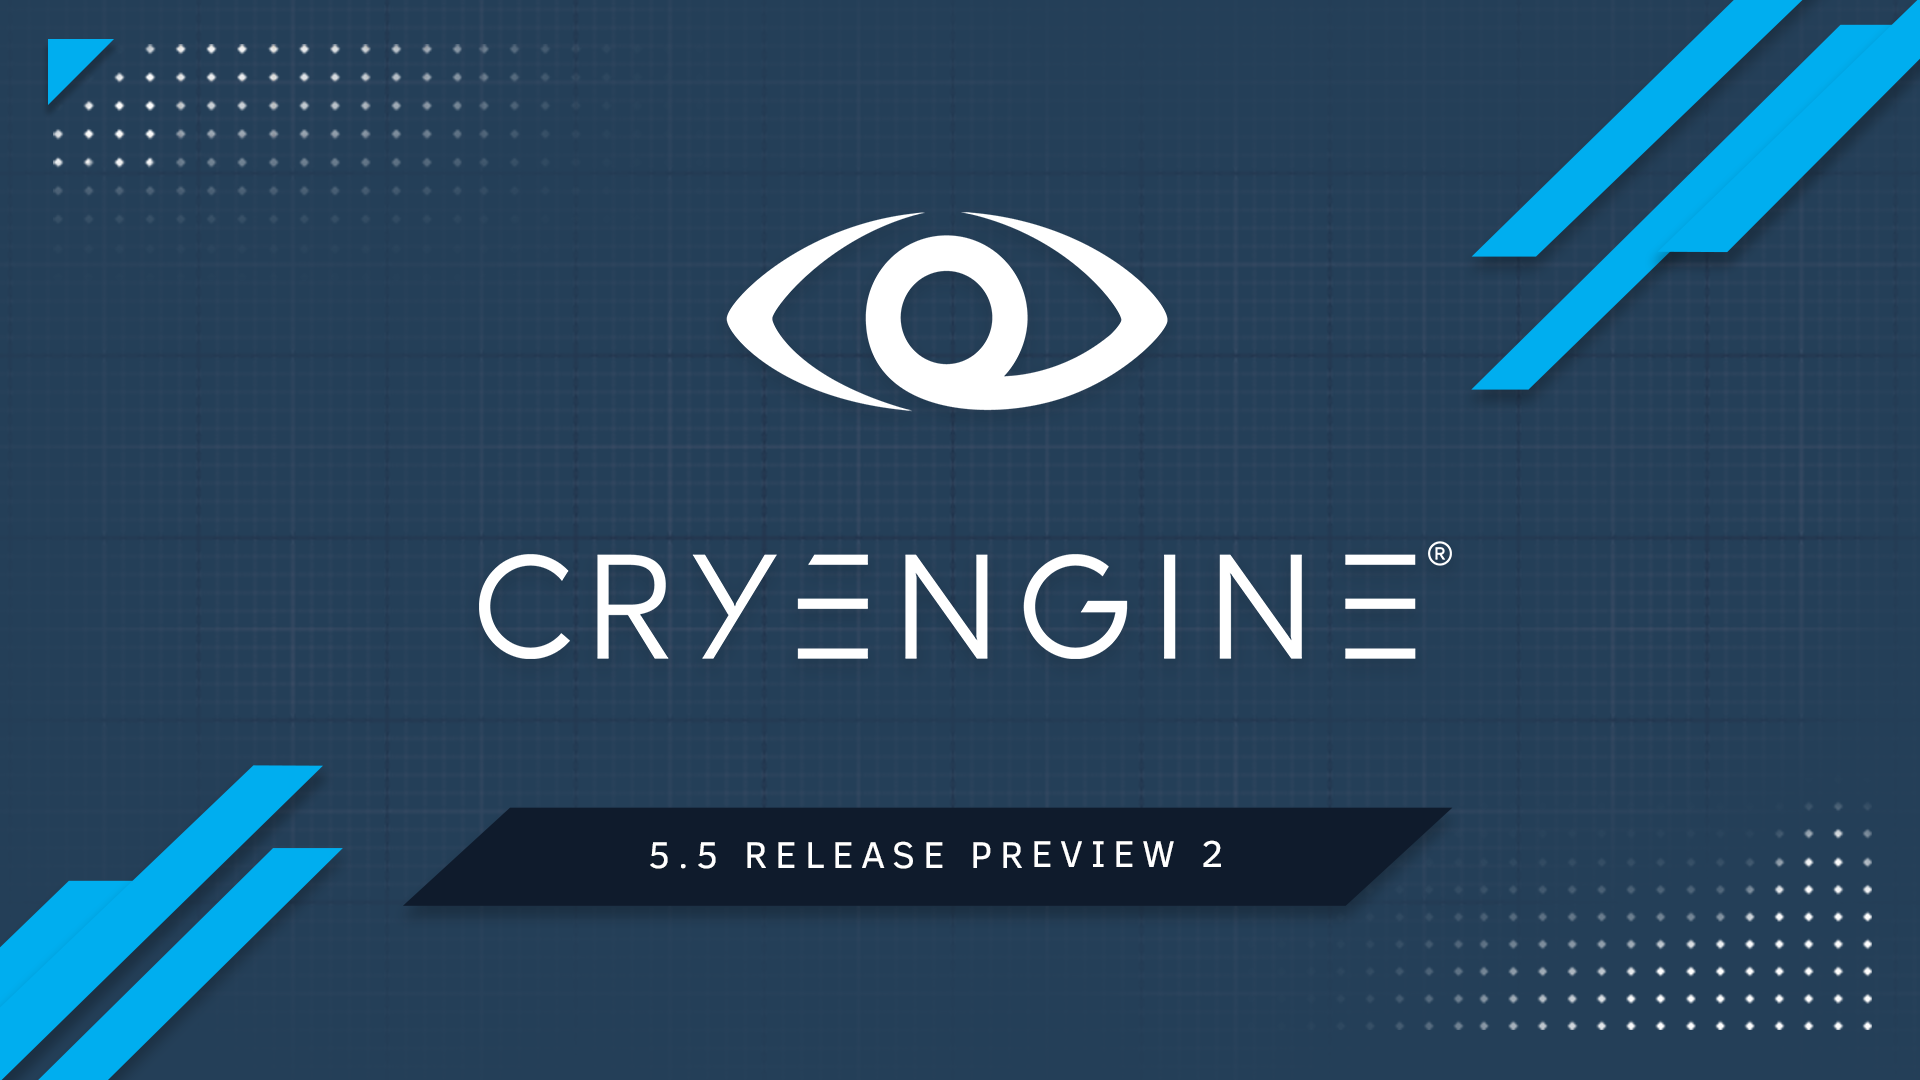 CRYENGINE 5.5 Preview 2 Live Now